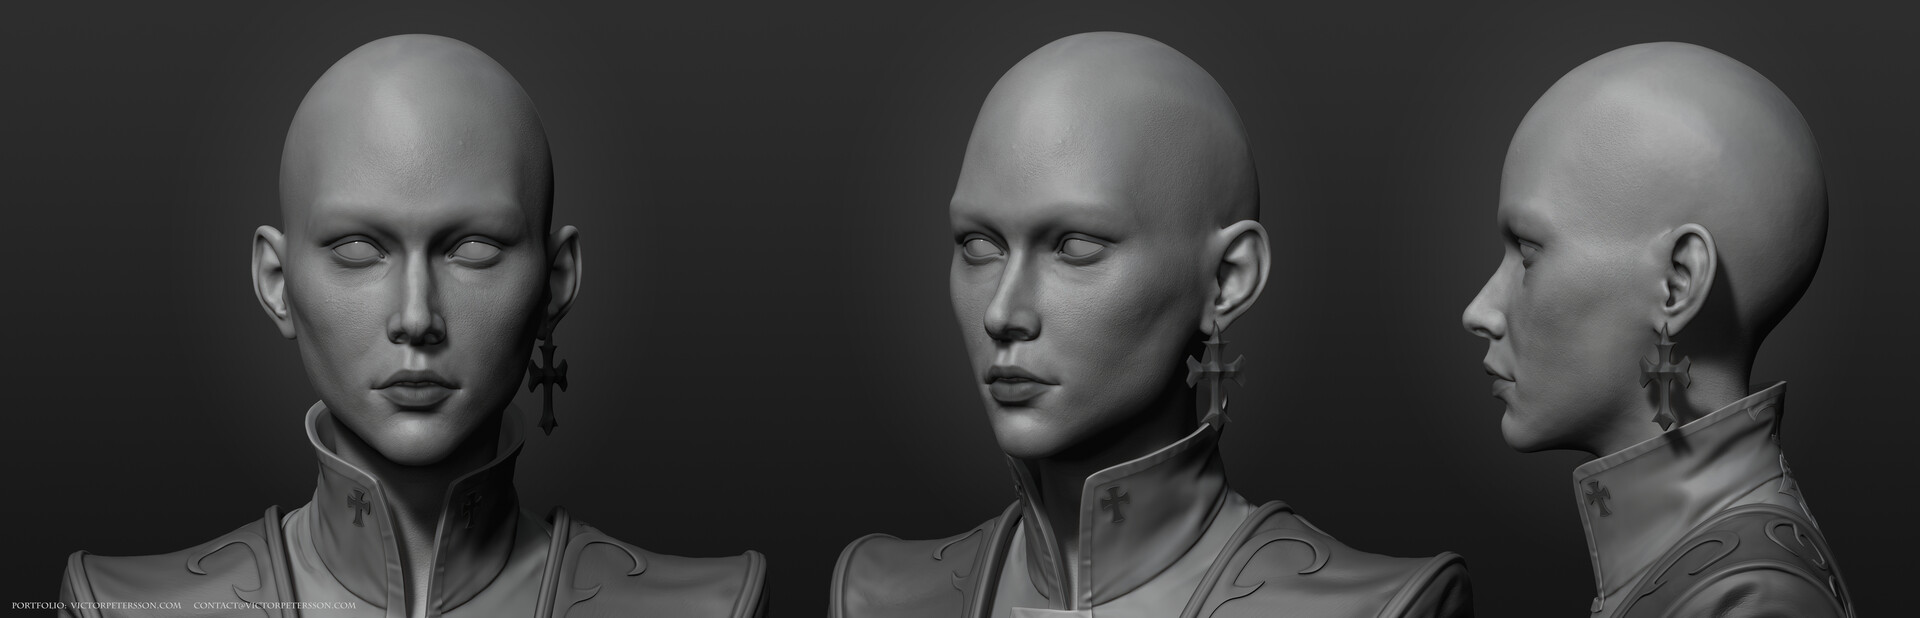 Victor petersson narcissism highpoly face